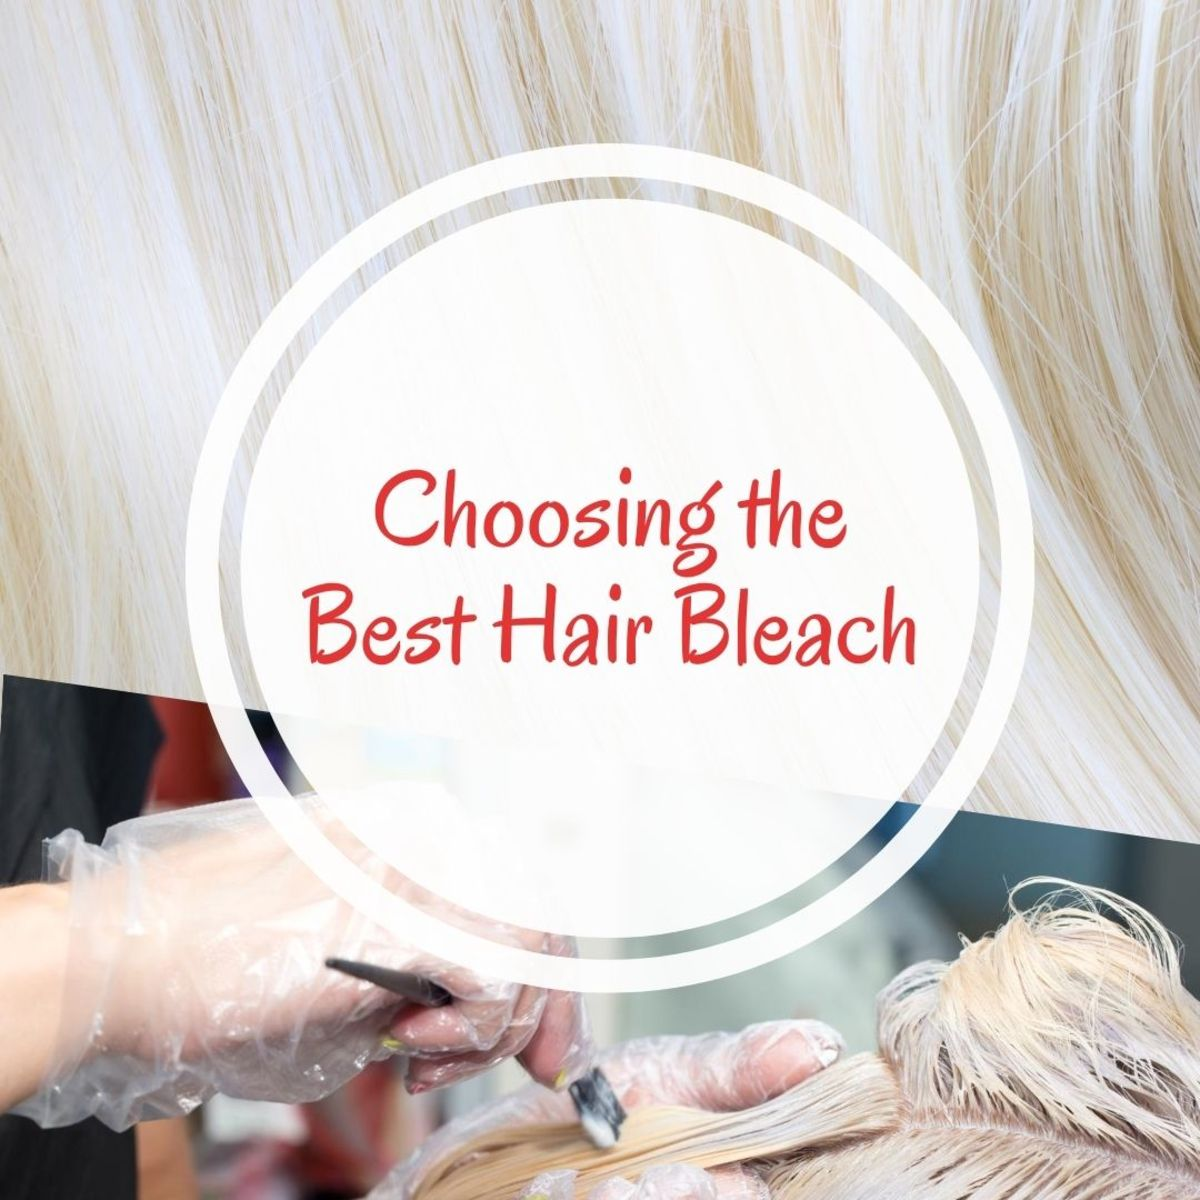 Look stunning by choosing the best hair bleach.